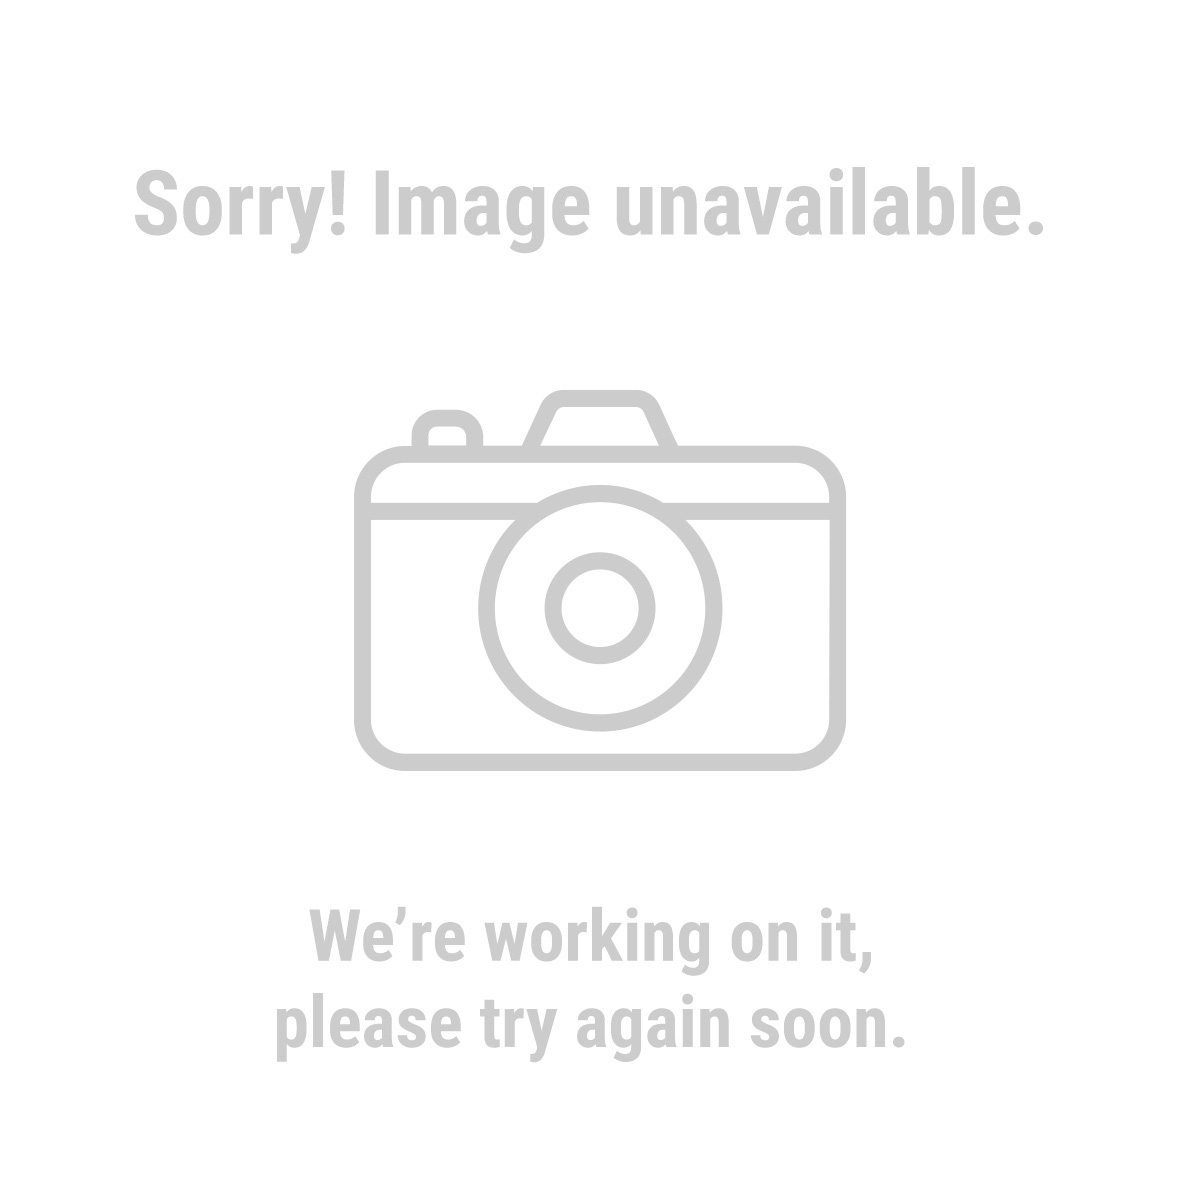 Storehouse 67528 206 Piece Anchors and Screws for Wood